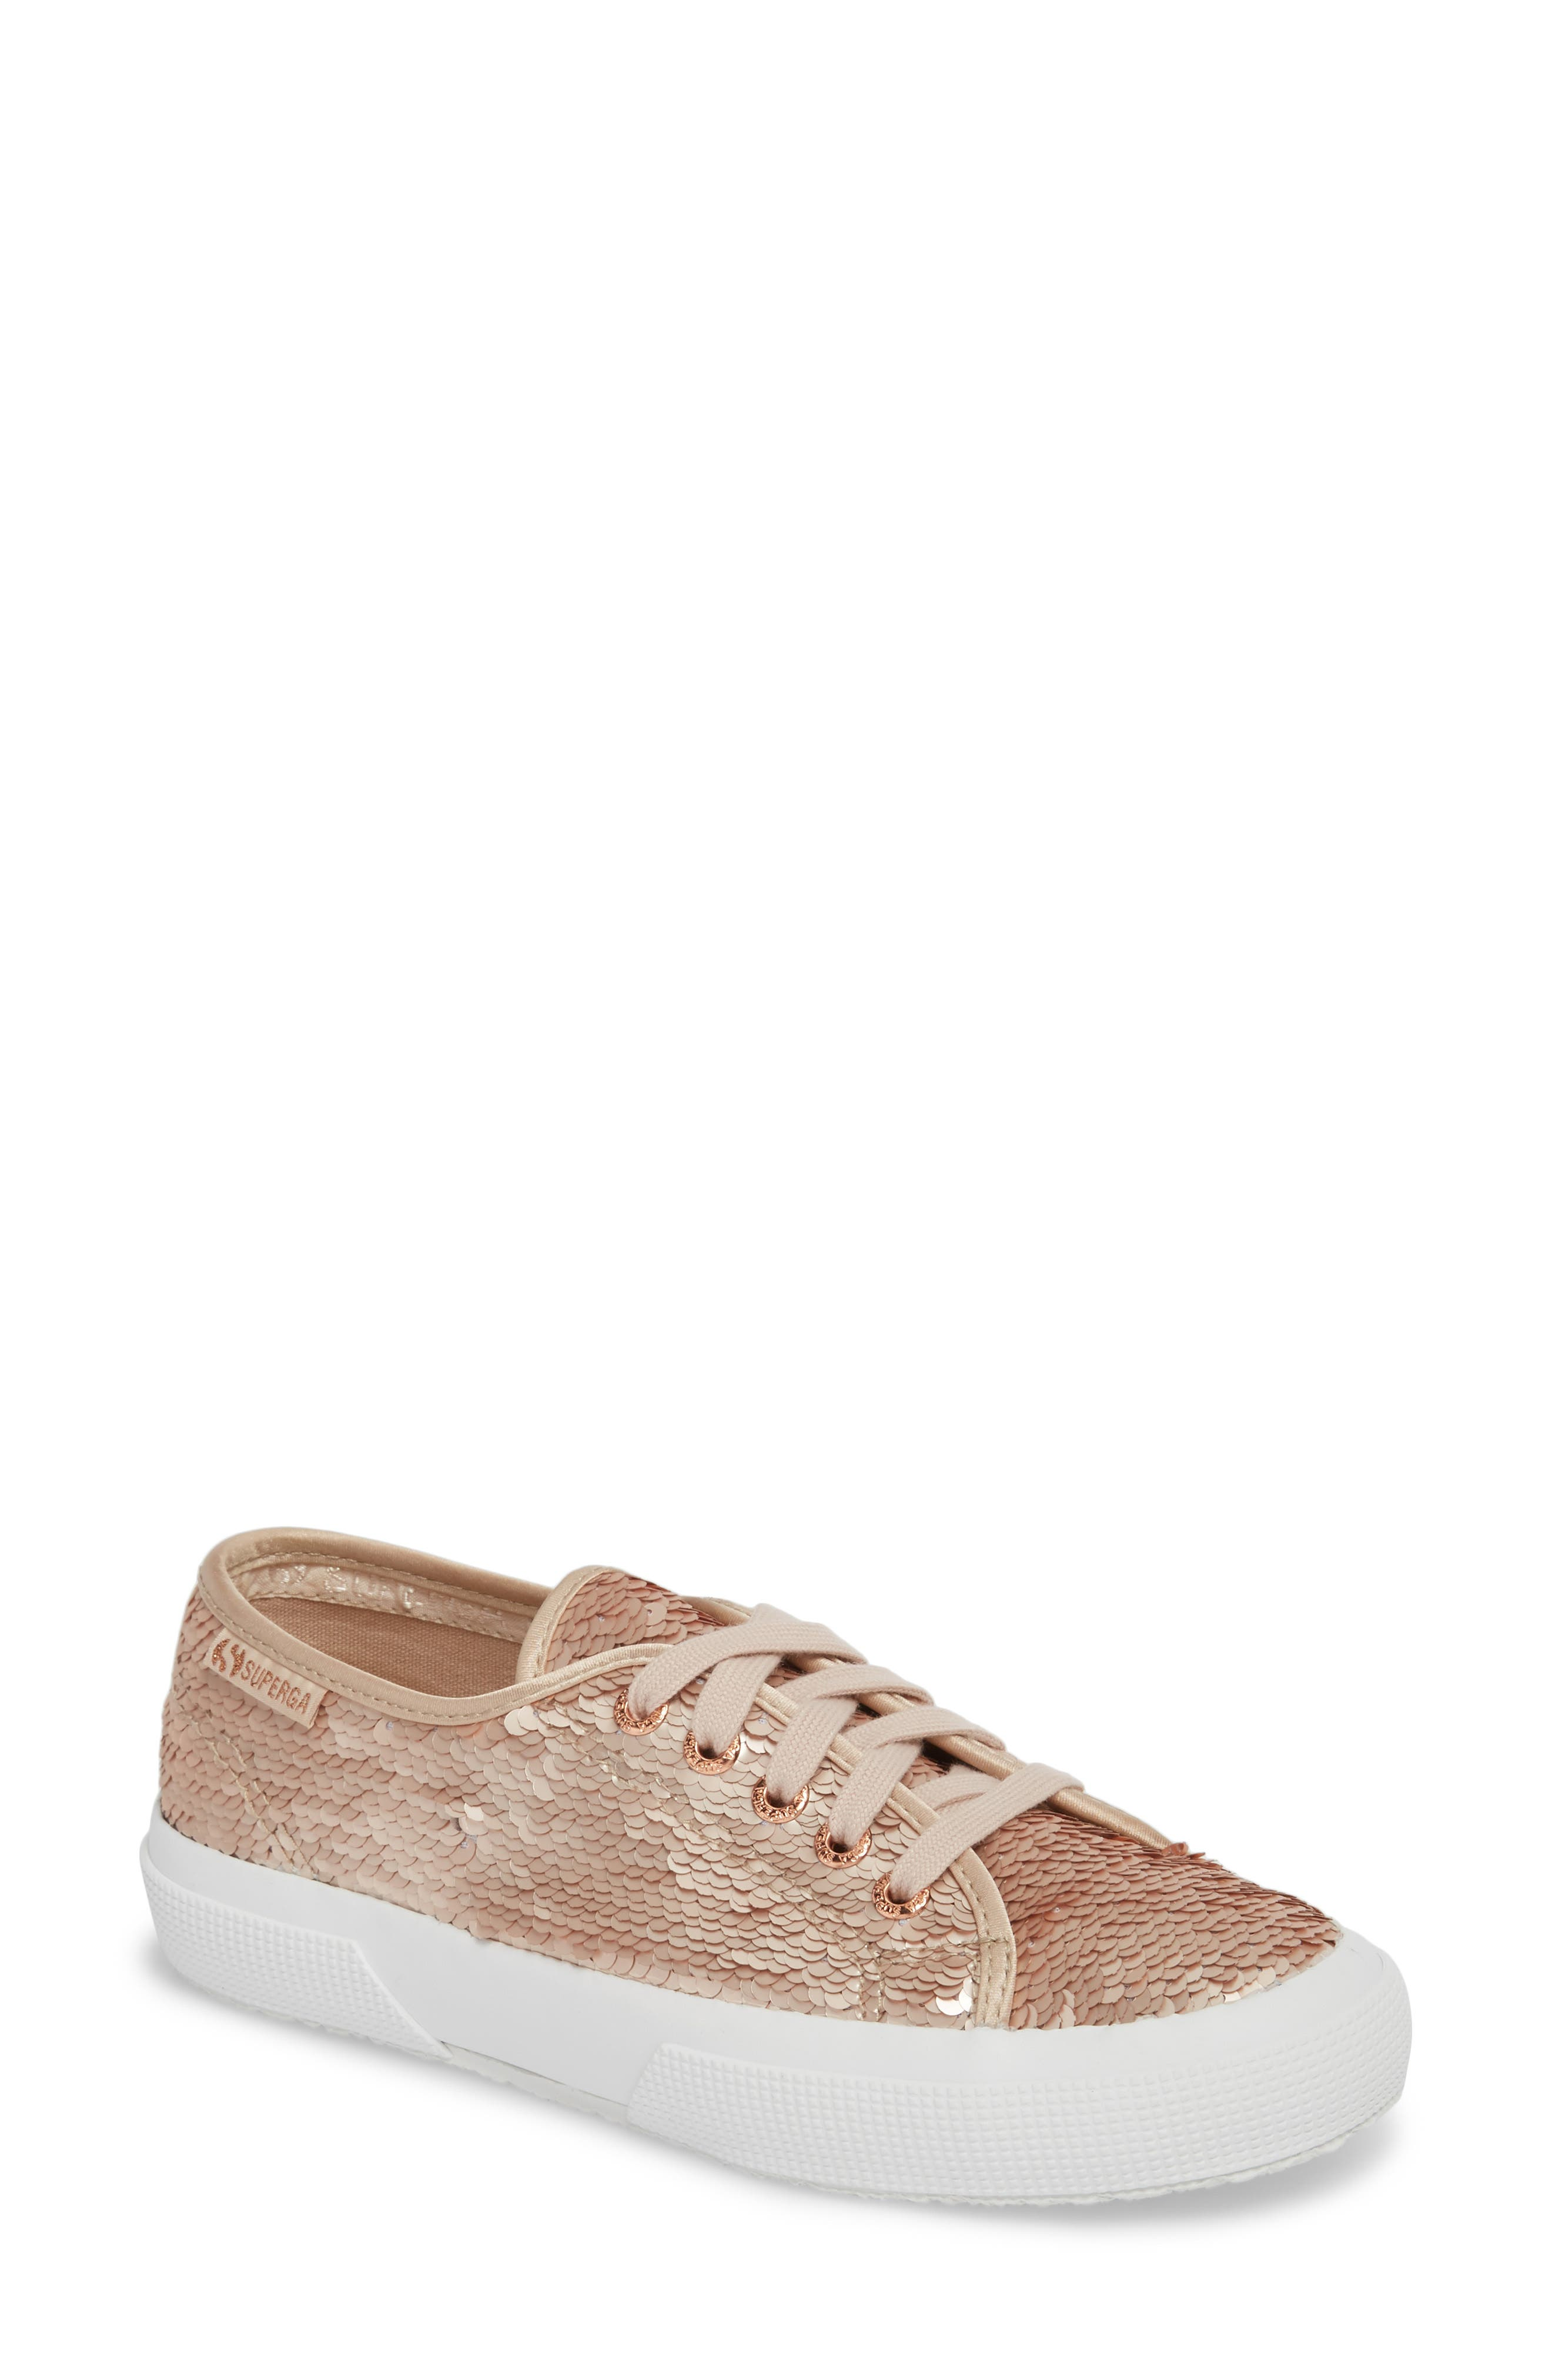 2750 Pairidescent Low Top Sneaker,                             Main thumbnail 1, color,                             Rose Gold/ Rose Gold